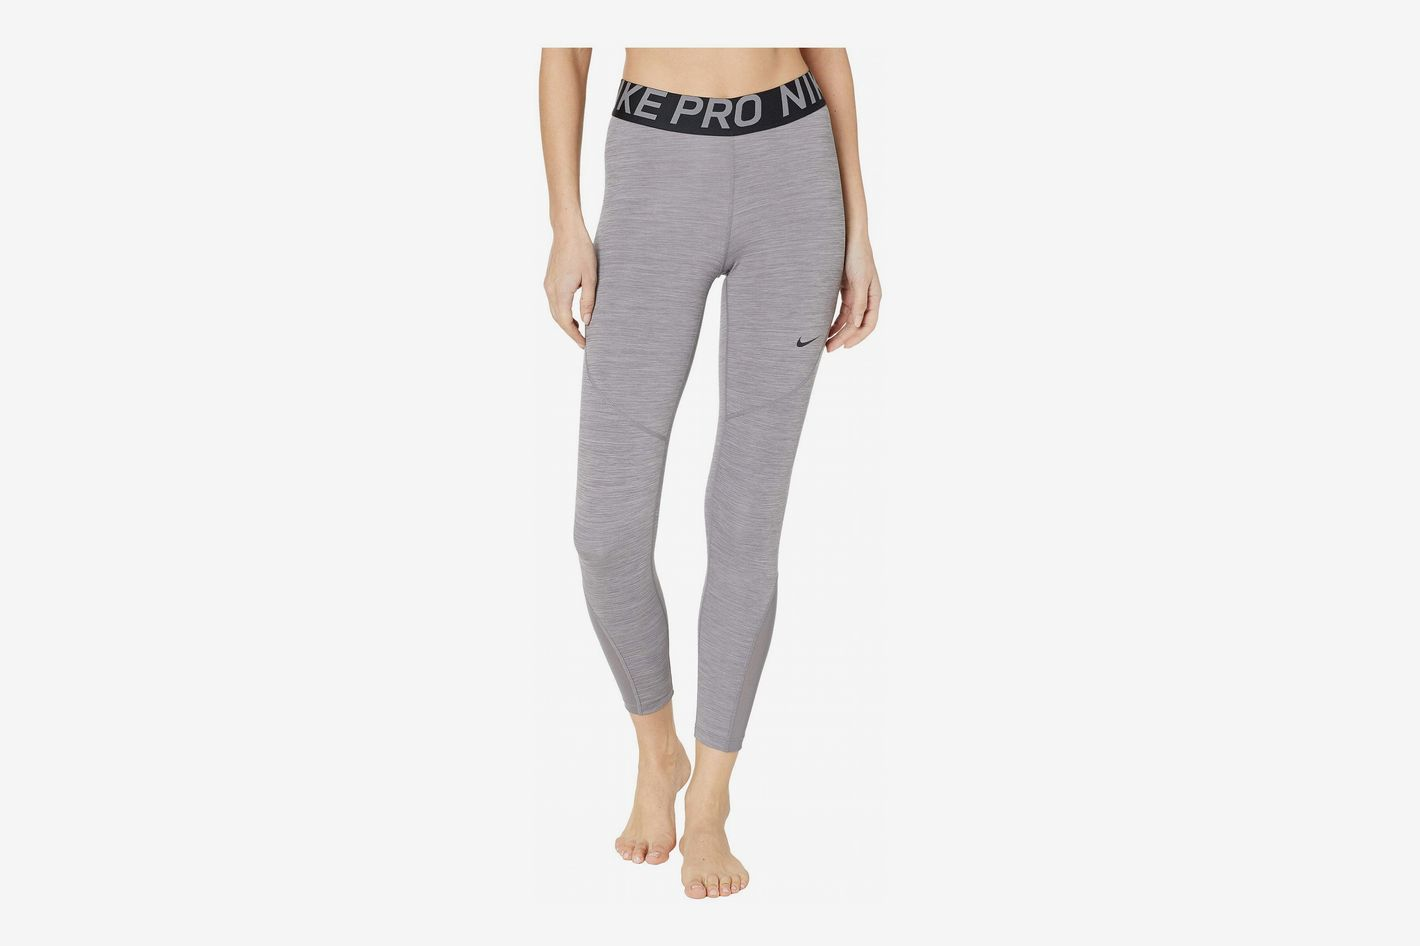 817ecb0bb6127 The 13 Best Workout Leggings for Running and Yoga 2019